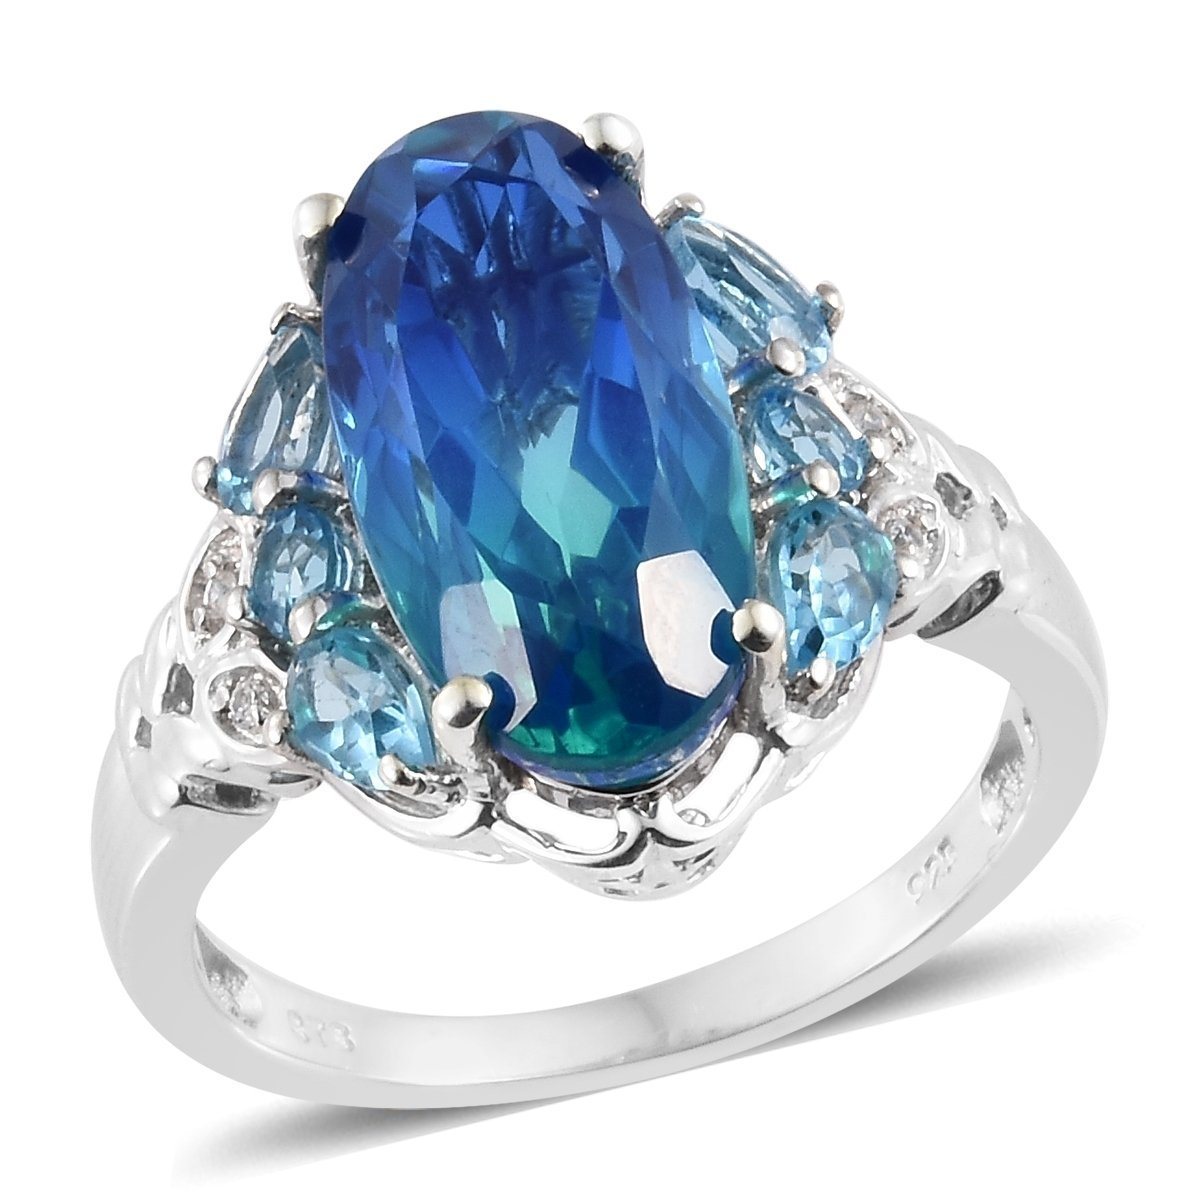 925 Sterling Silver Platinum Plated Oval Ocean Quartz, Blue Topaz Fashion Ring for Women Size 7 Cttw 7.8